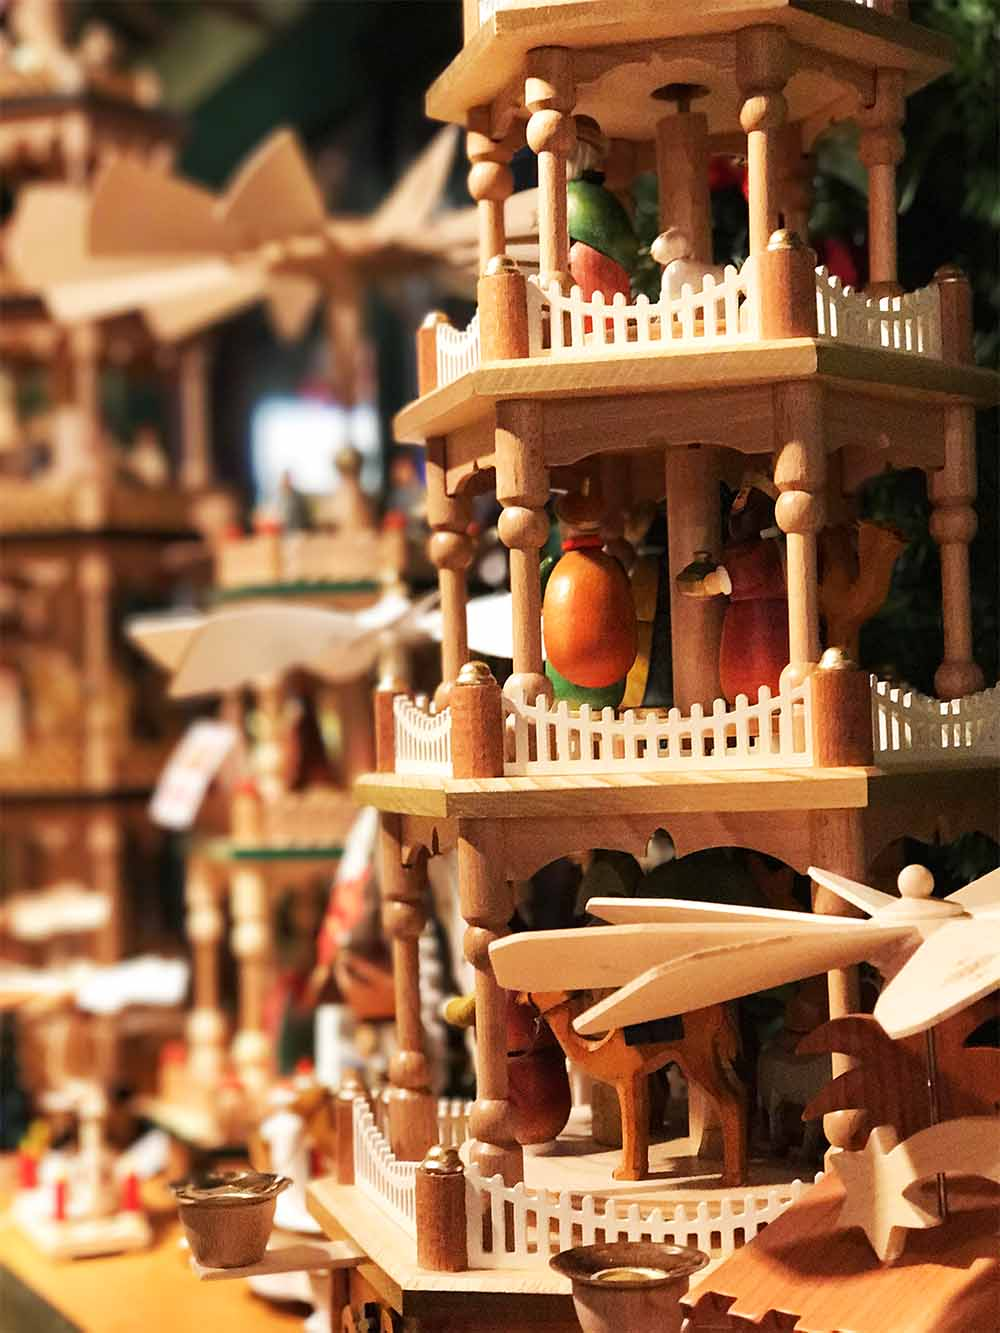 Traditional wooden Christmas pyramids on display.